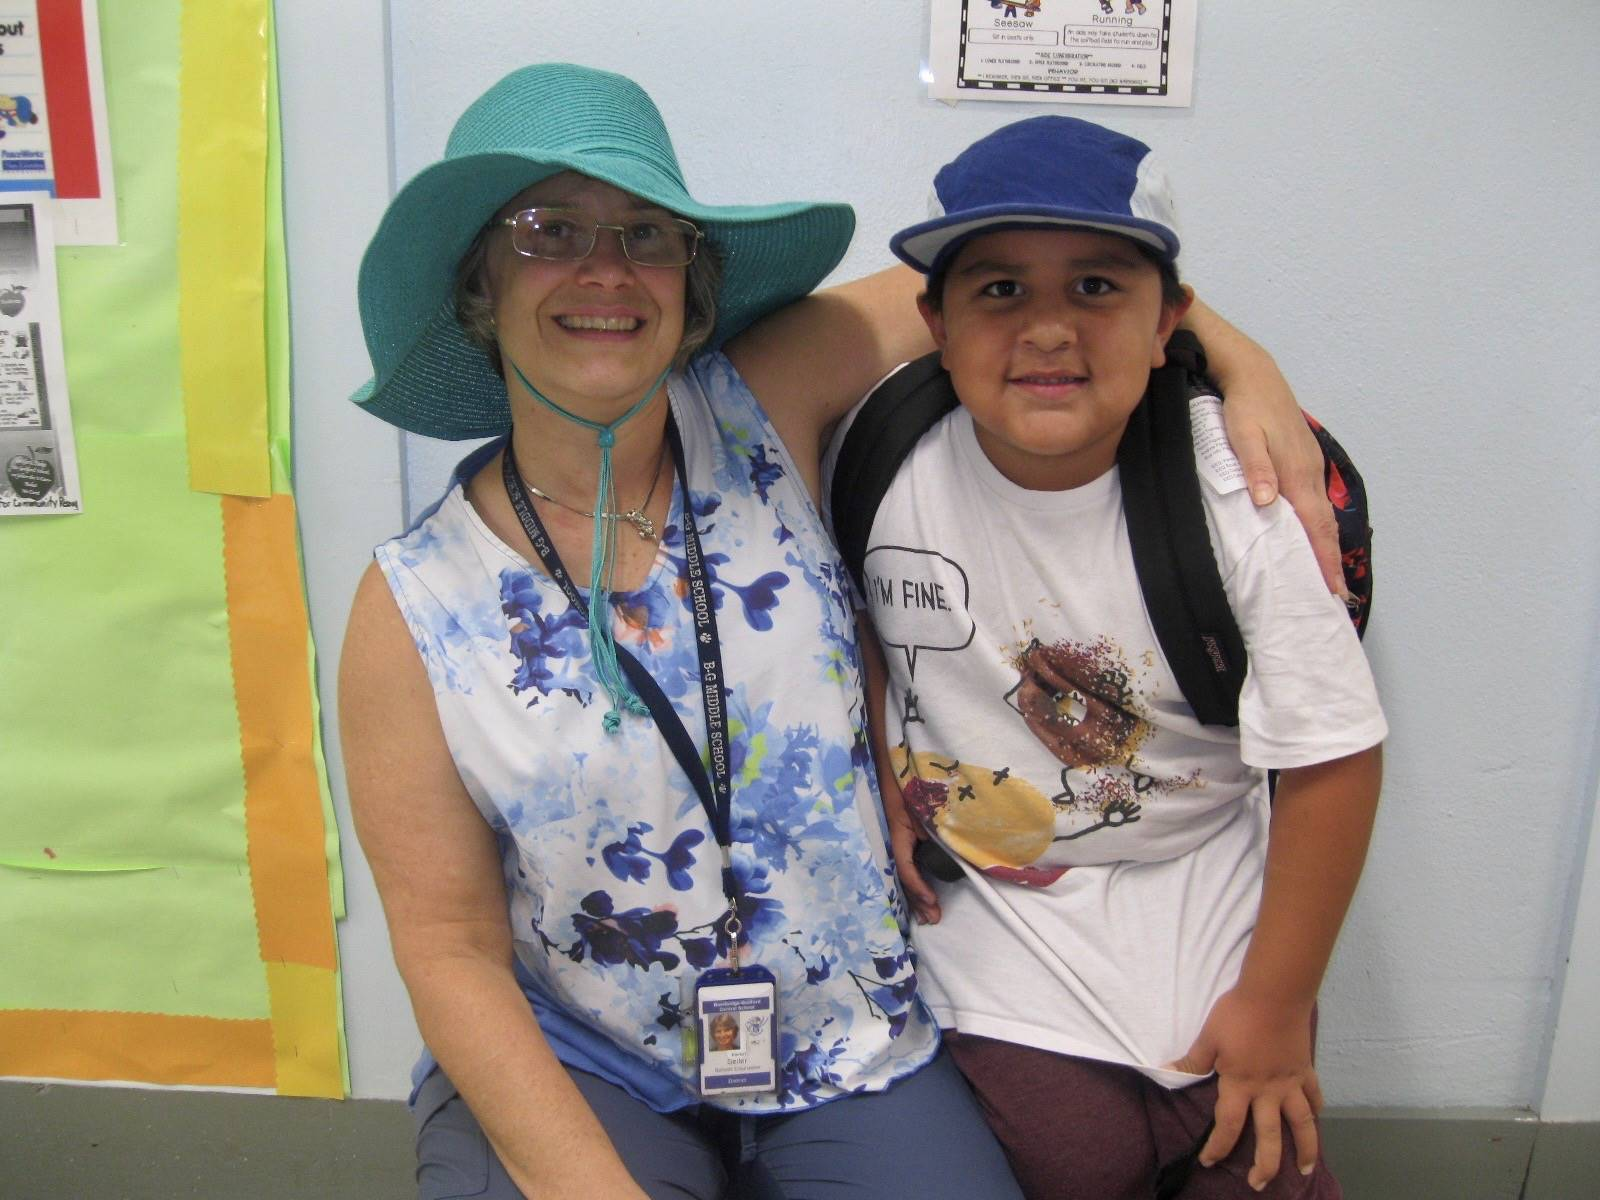 A staff member and student with hats on!